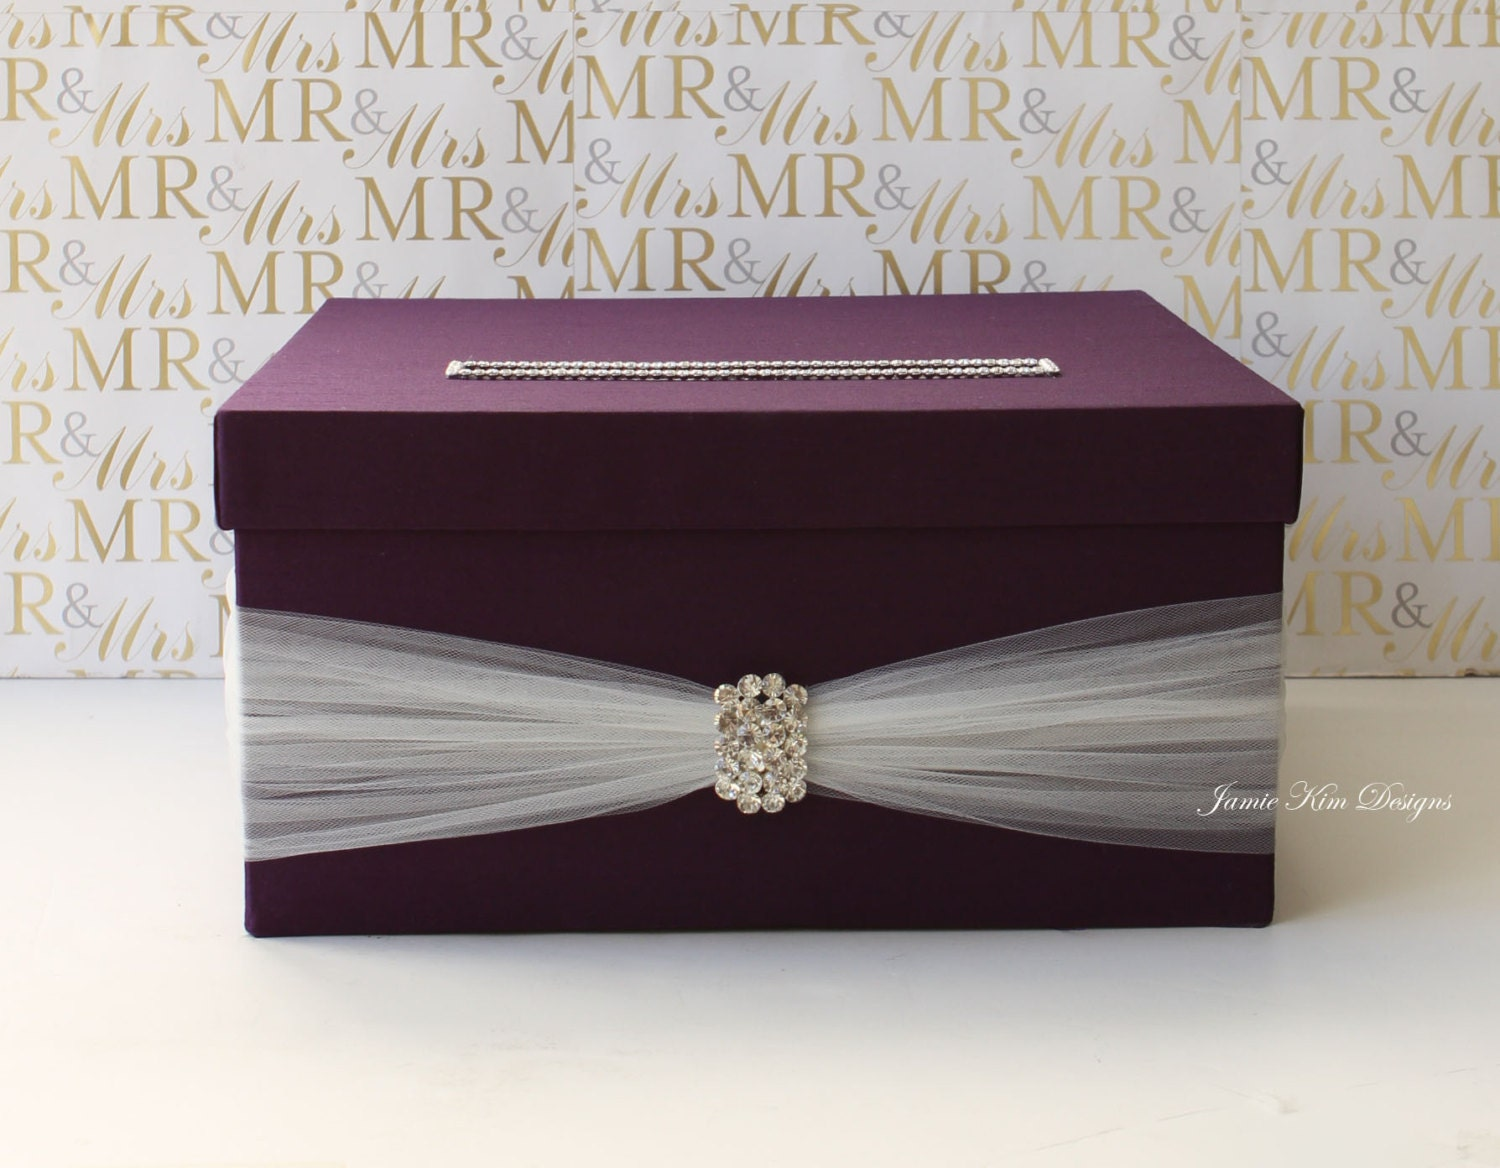 Wedding Gift Envelope Box Suggestions : Wedding card box Wedding Money Box Custom Made by jamiekimdesigns